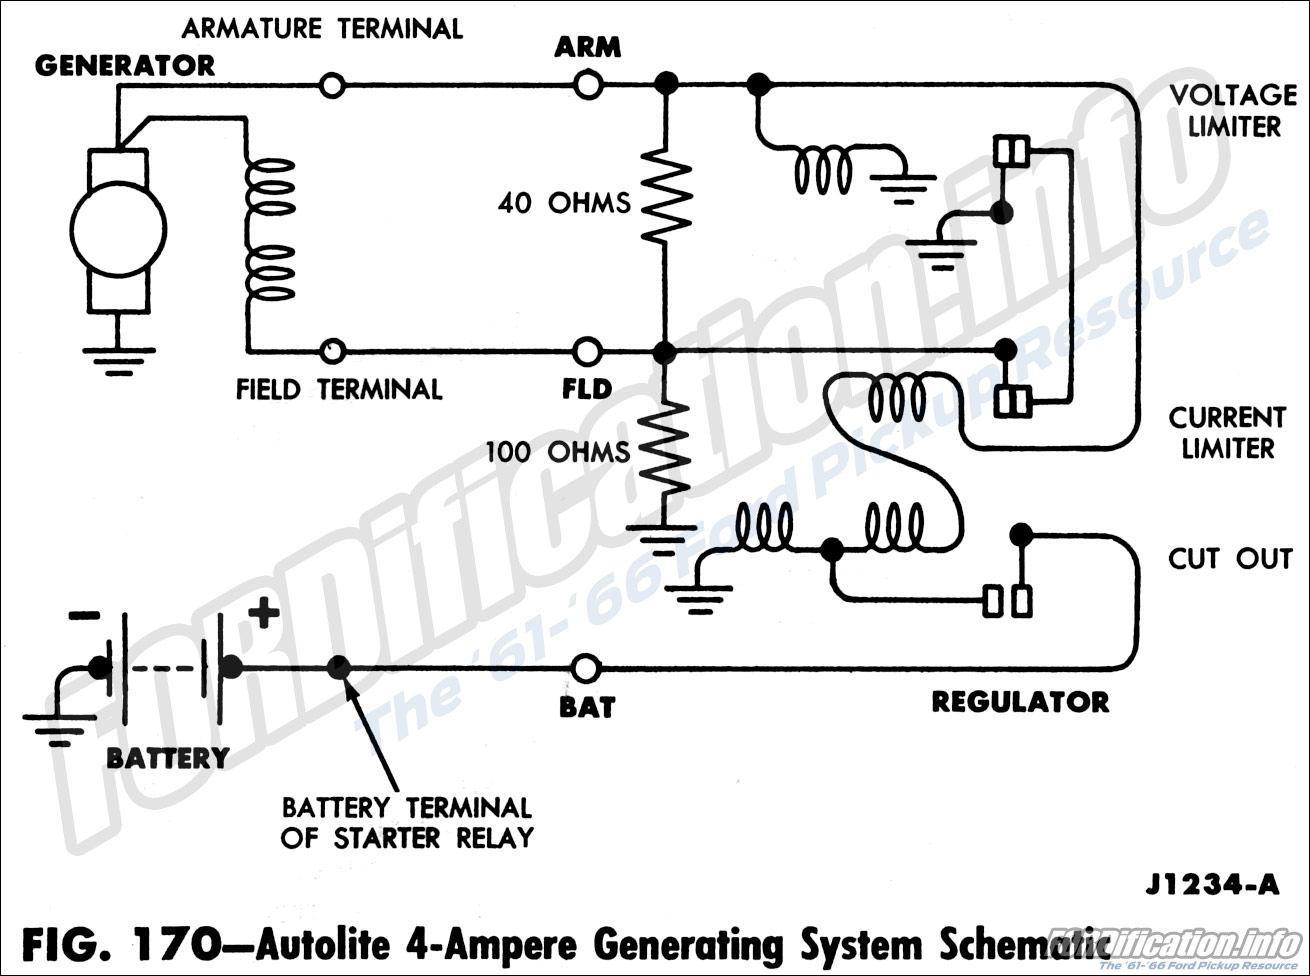 Anyone Has Wiring Diagram Ford Mustang 196338 moreover 98 Ford Ranger Fuel Pump Relay furthermore Ford Autolite Starter Diagram in addition Dohc For 2001 Ford Focus Starter Location also 1988 F250 Fuel Pump Relay. on starting system wiring diagram 2001 ford focus